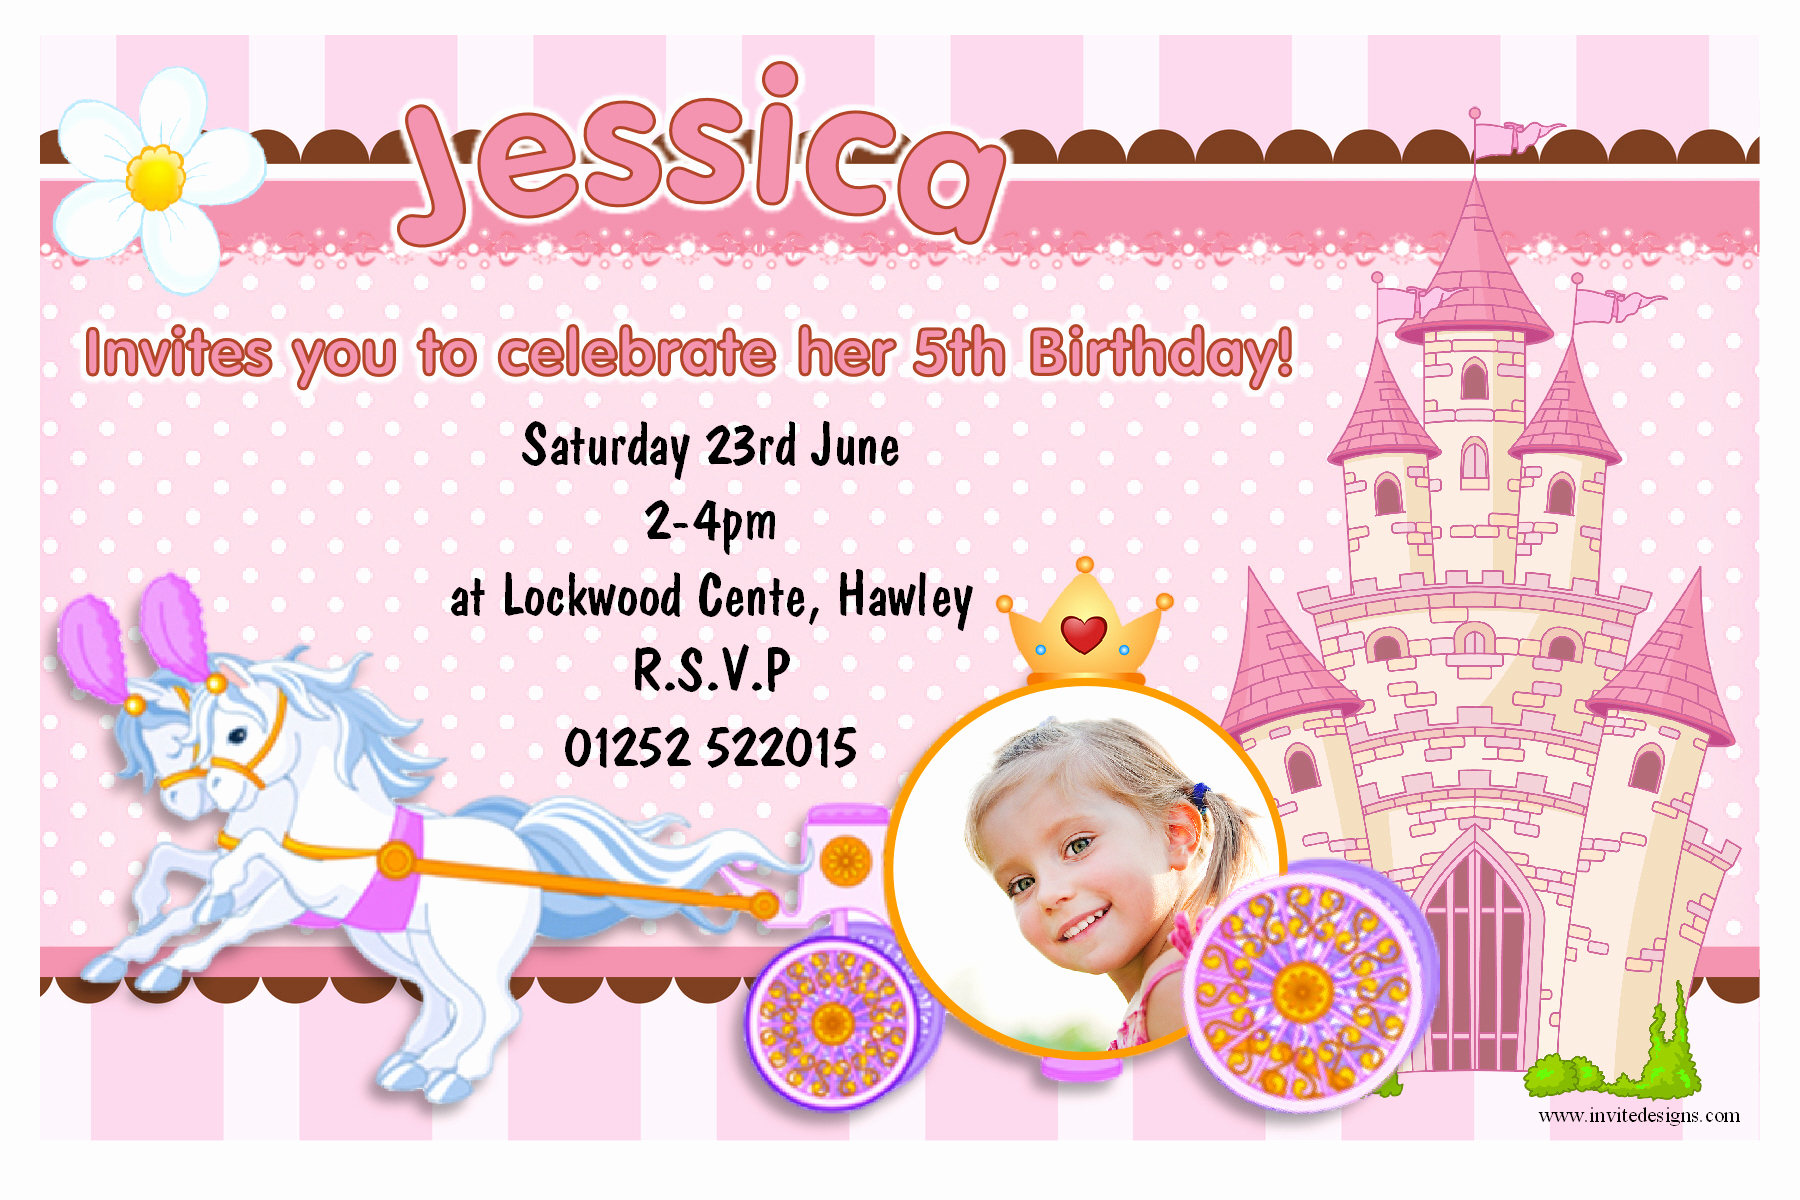 Invitation Card for Birthday Inspirational Invitation Card Princess Birthday